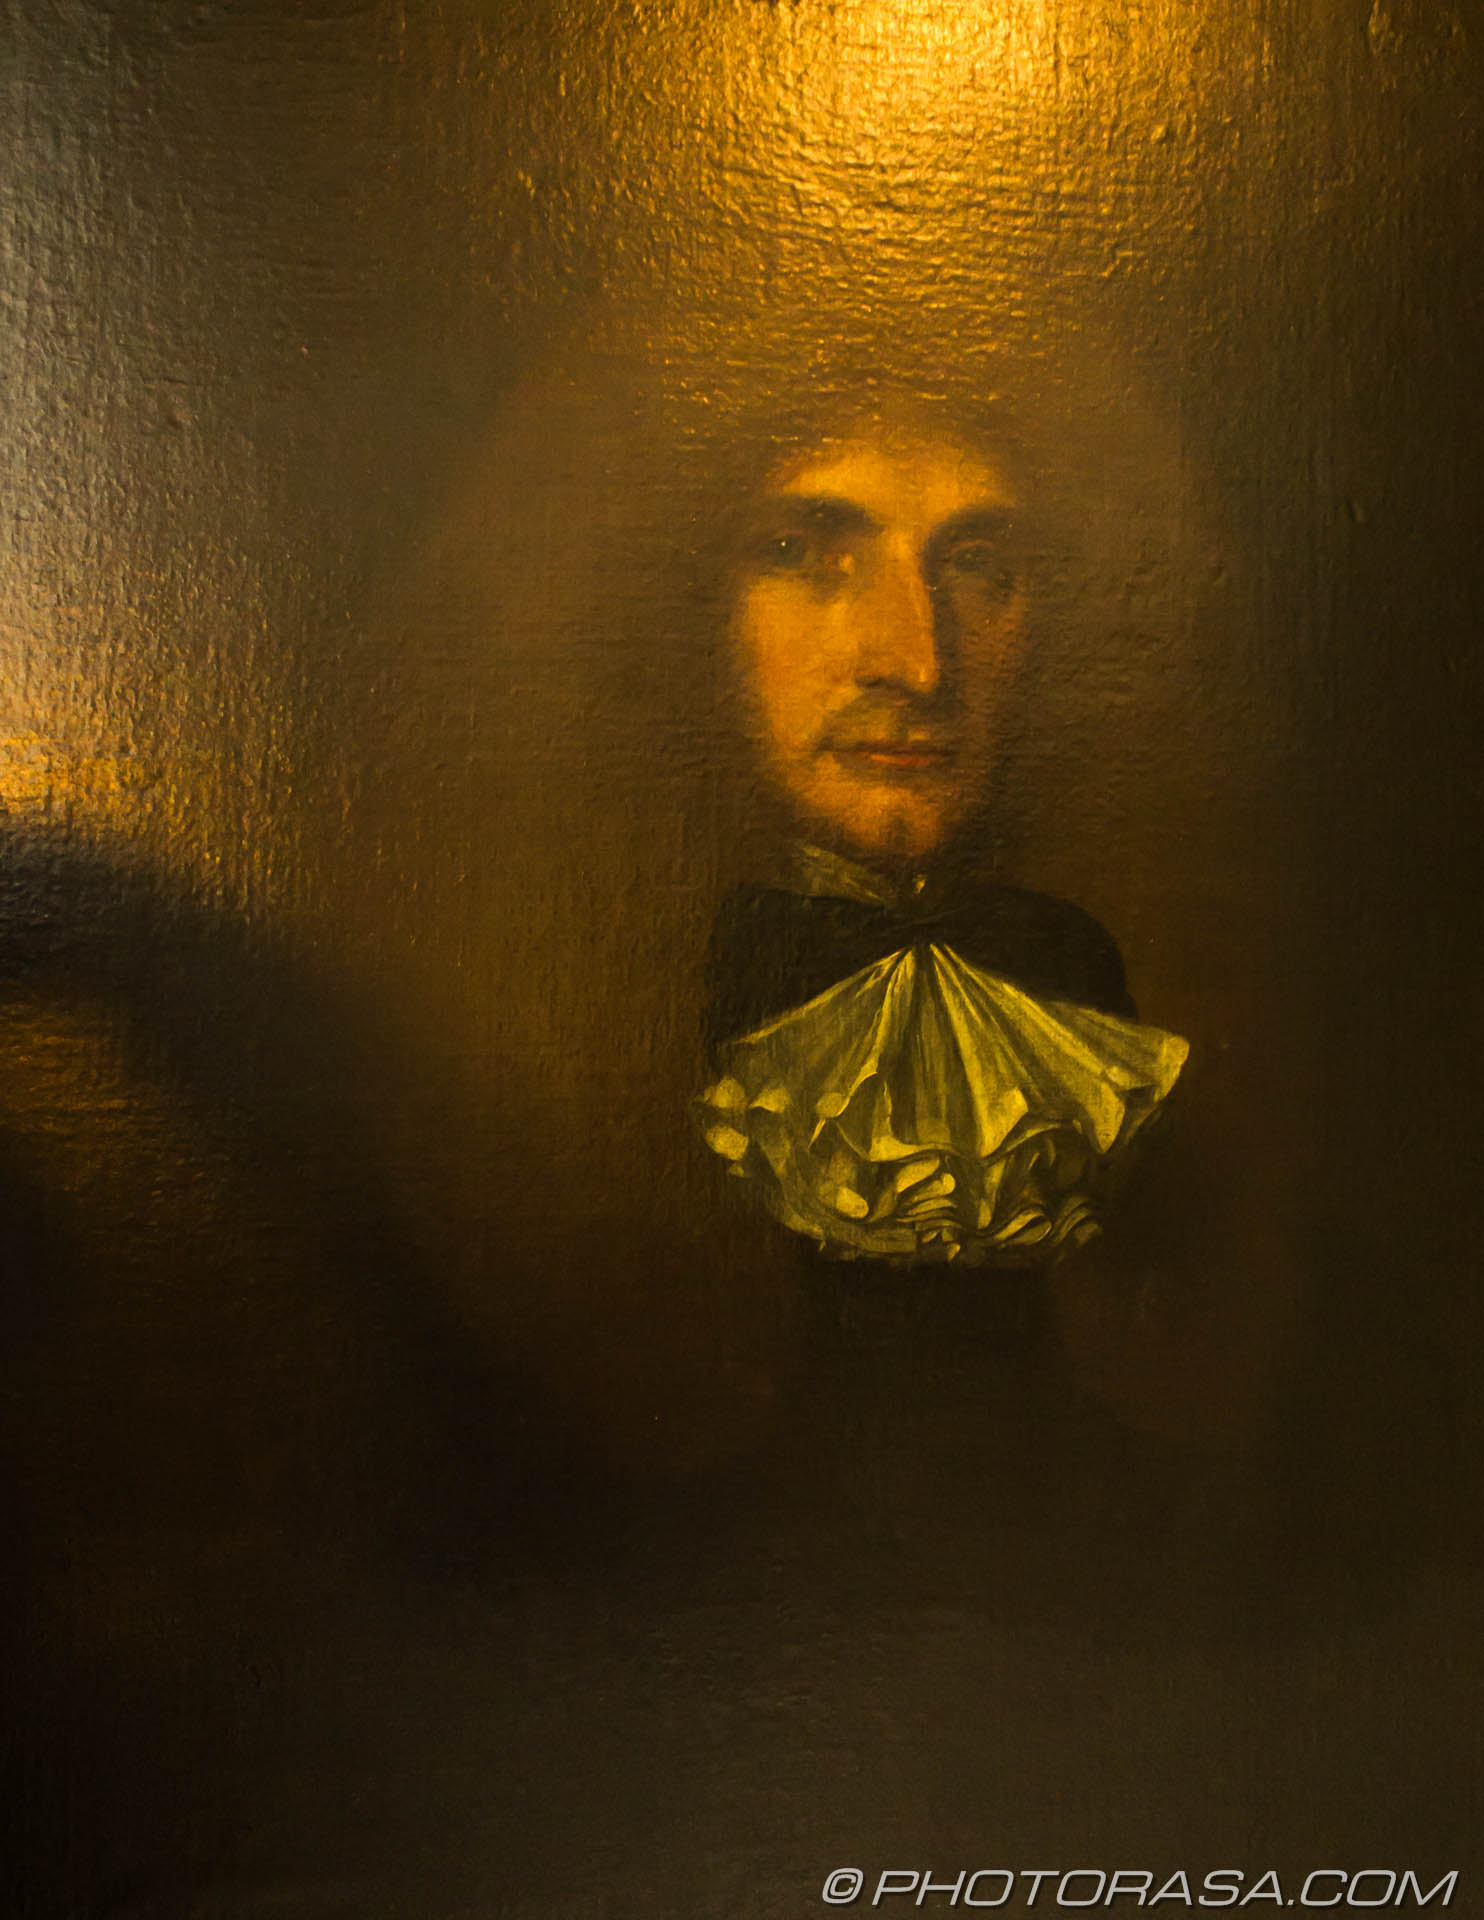 http://photorasa.com/stoneacre-house-paintings/1th-century-oil-on-canvas-of-unknown-man-in-cravat/